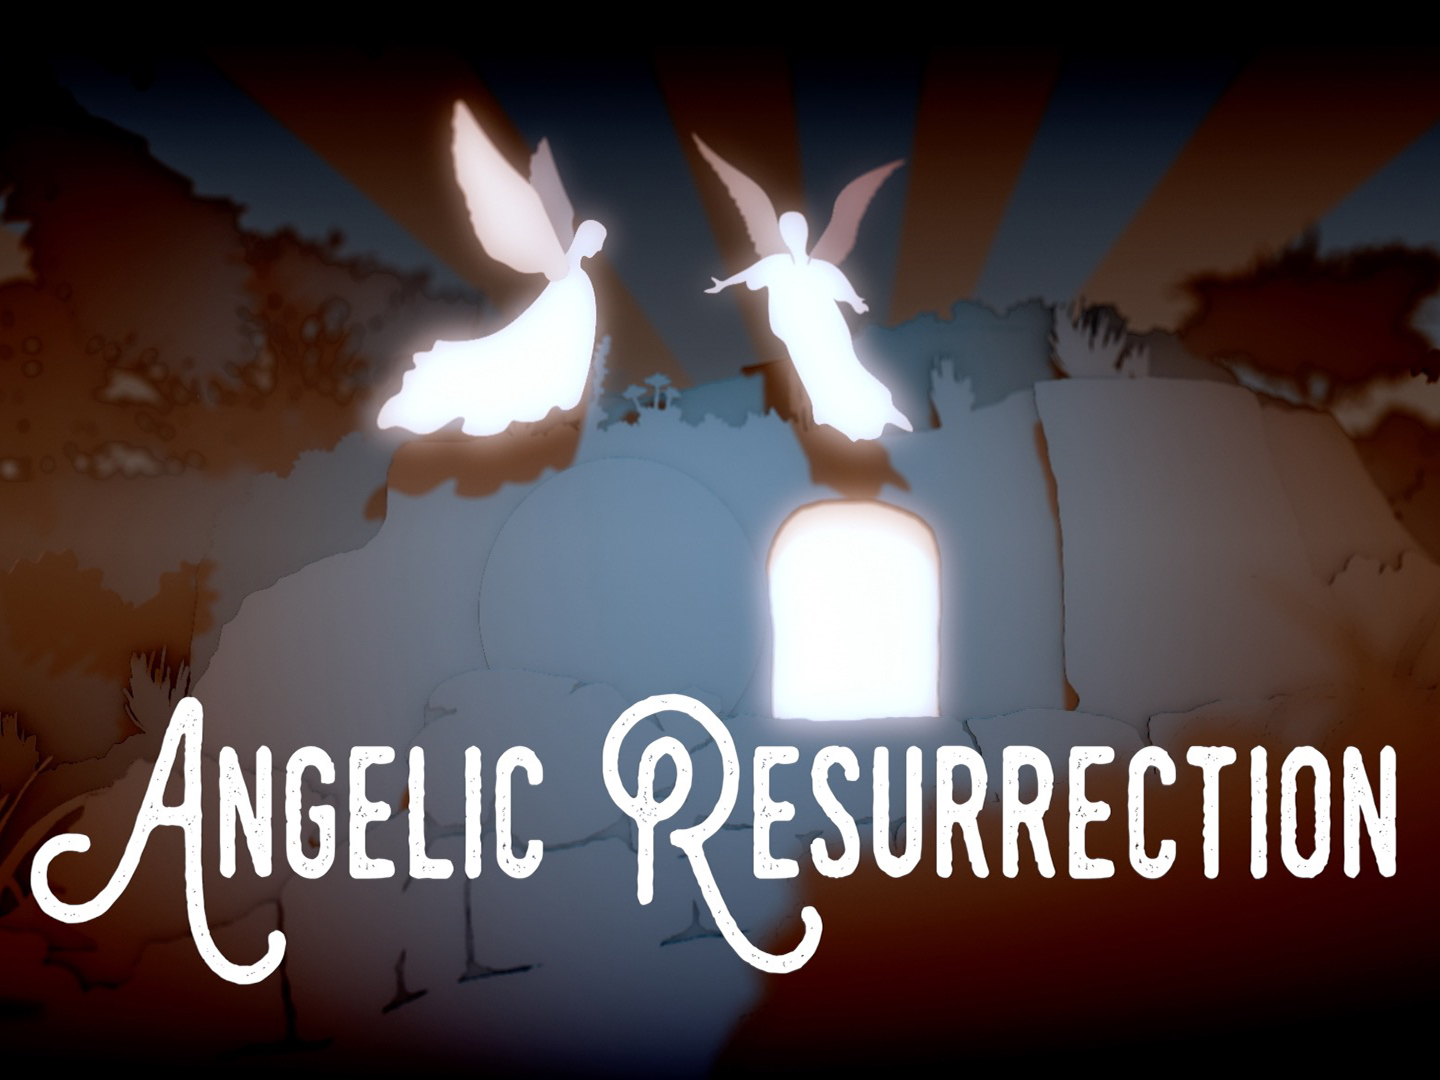 ANGELIC RESURRECTION COLLECTION